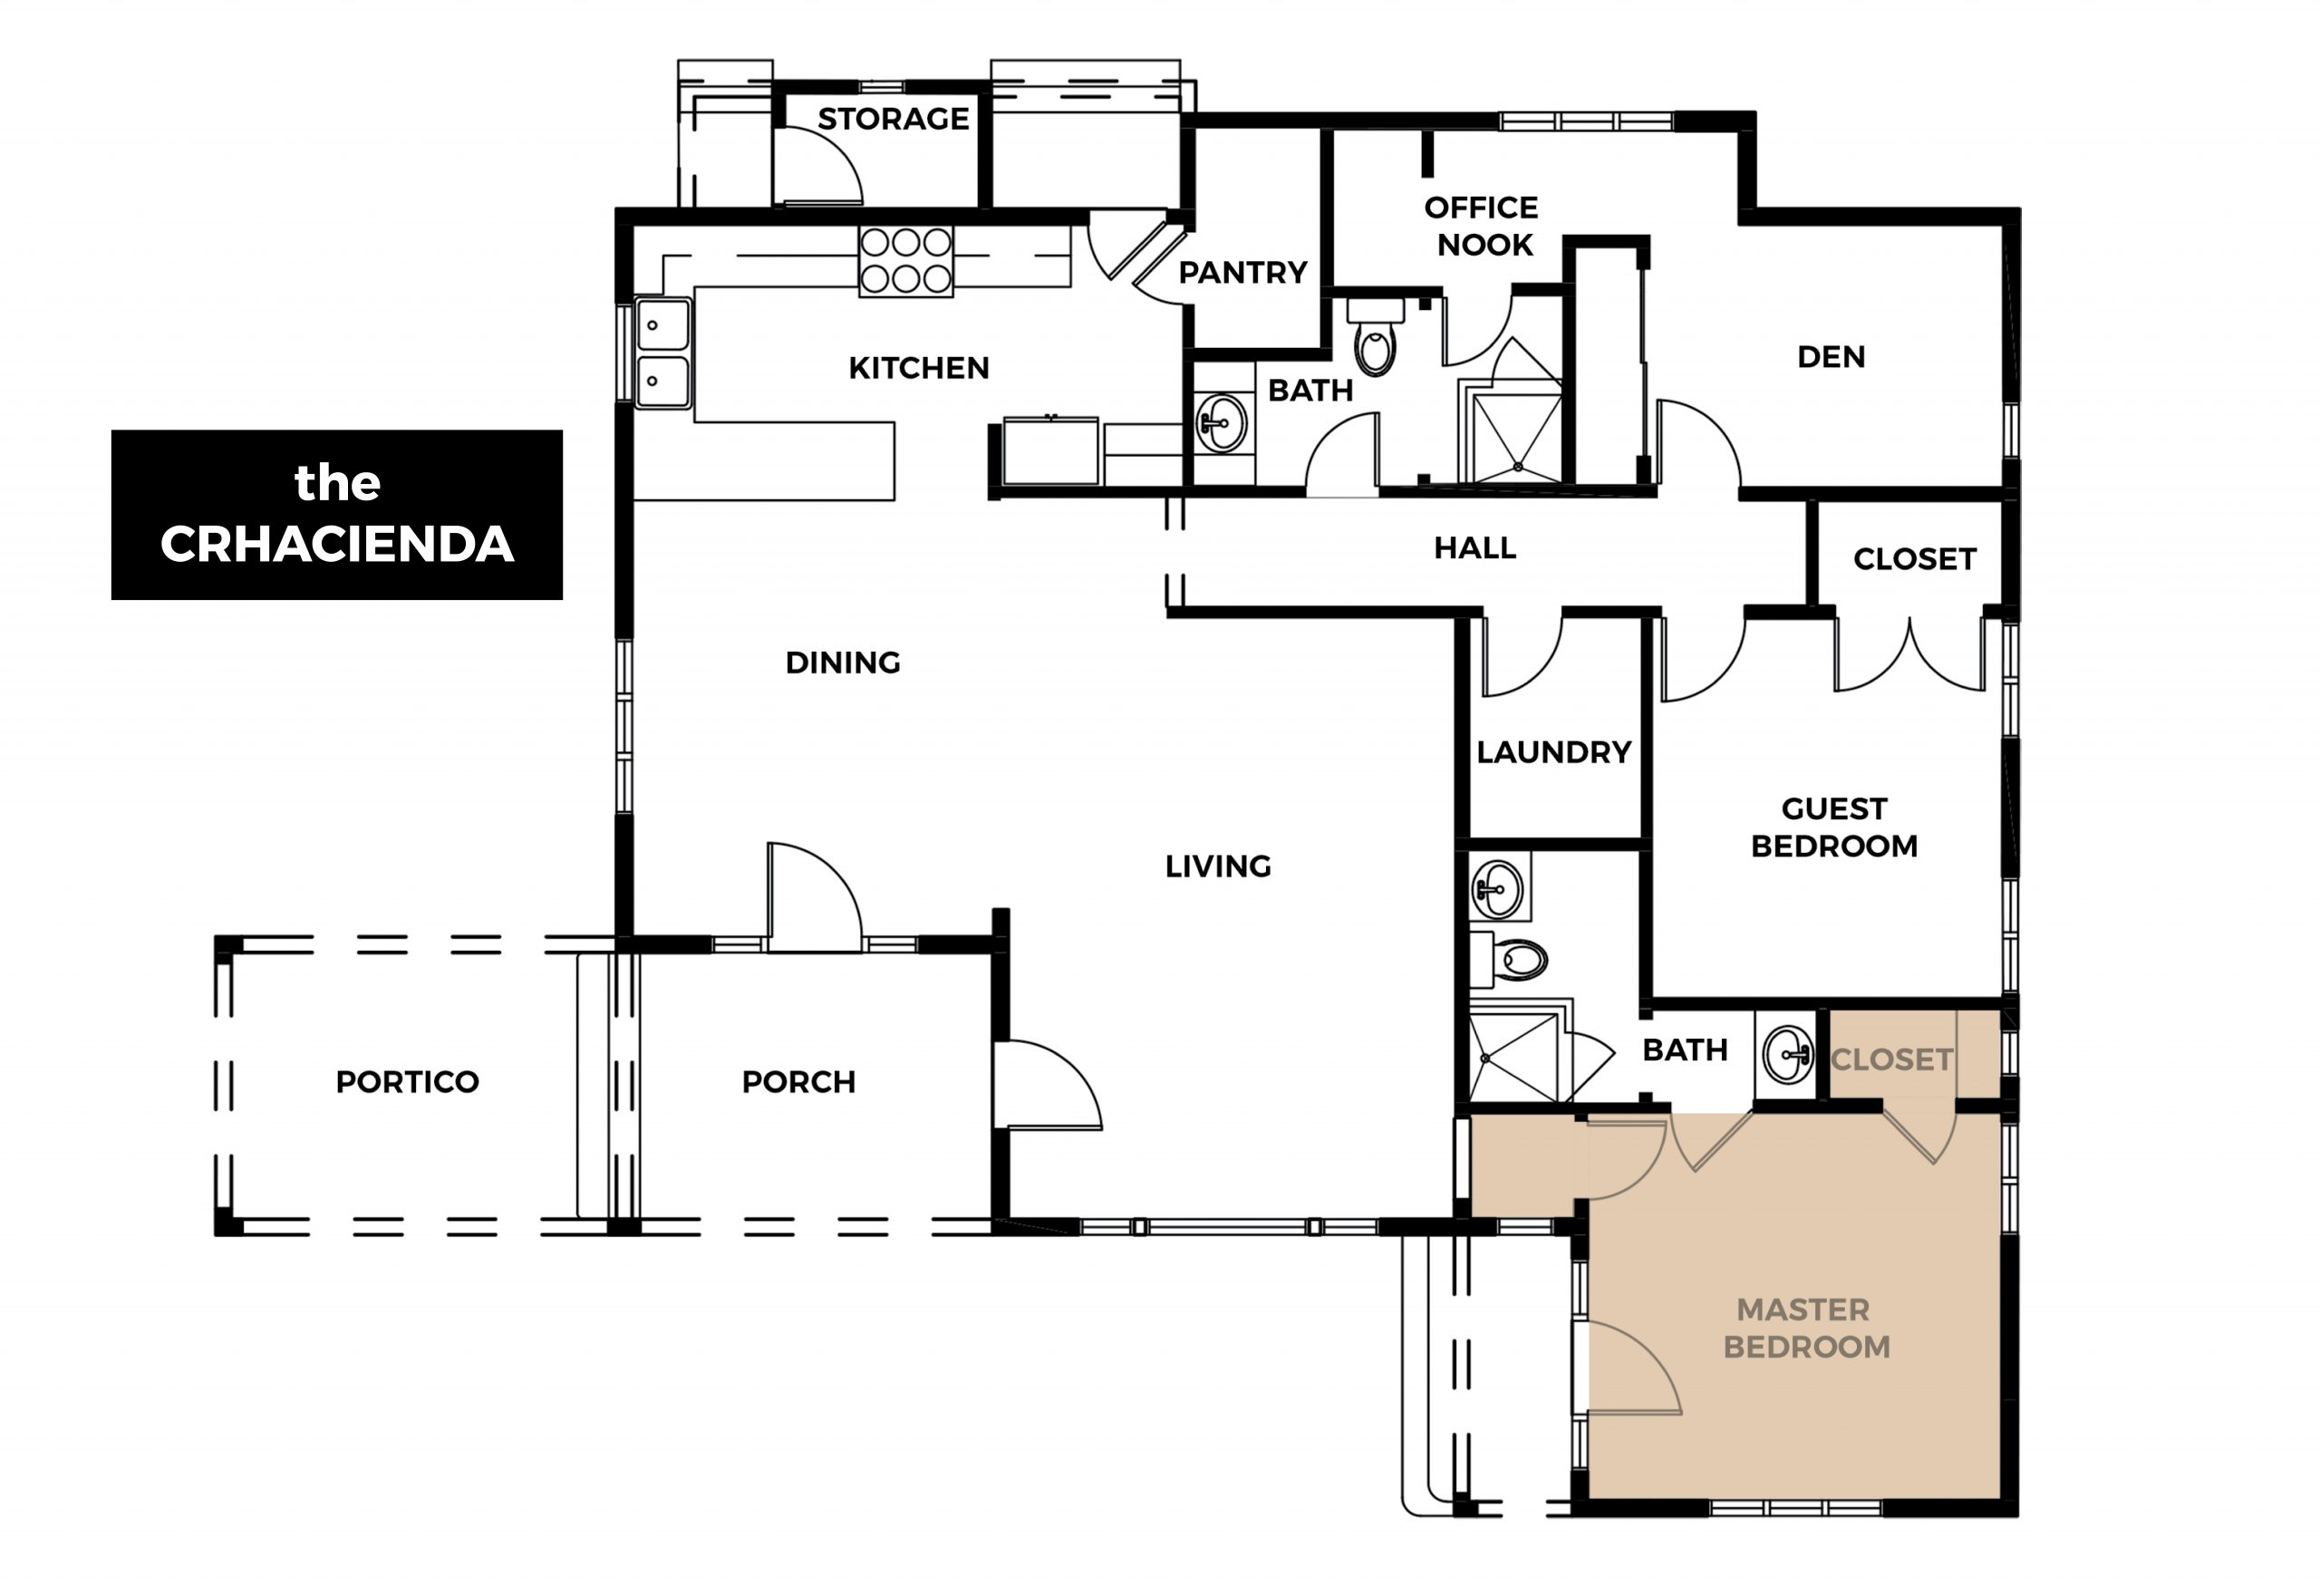 Crhacienda Floor Plan